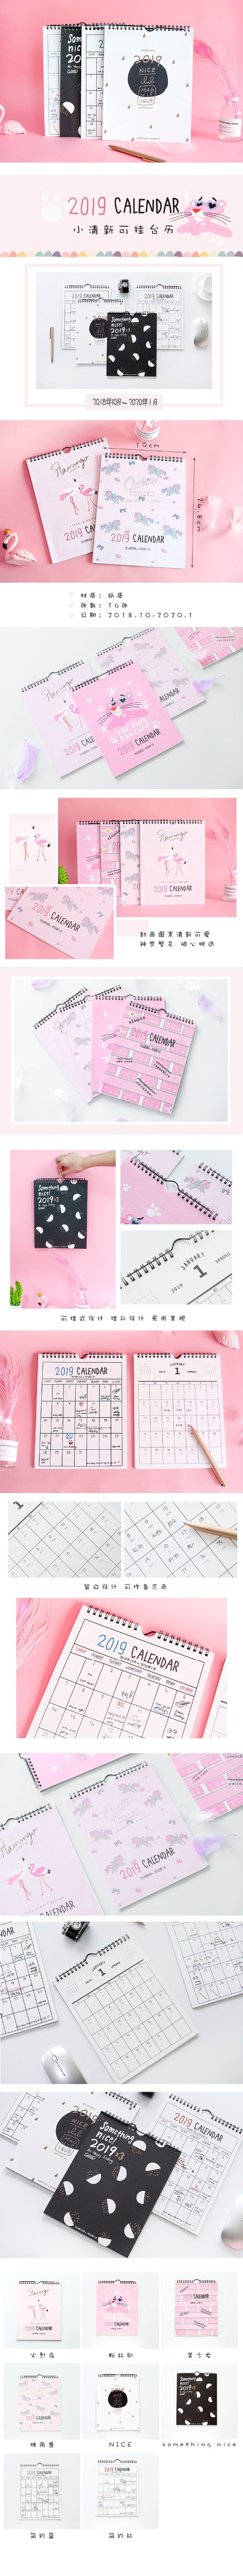 Calendars, Planners & Cards 1 Piece 24.8cm Big Size 2019 Flamingo Calendar Office Stationery Desk Notebook Holiday Promotion Gift Girls Birthday Gift Calendar